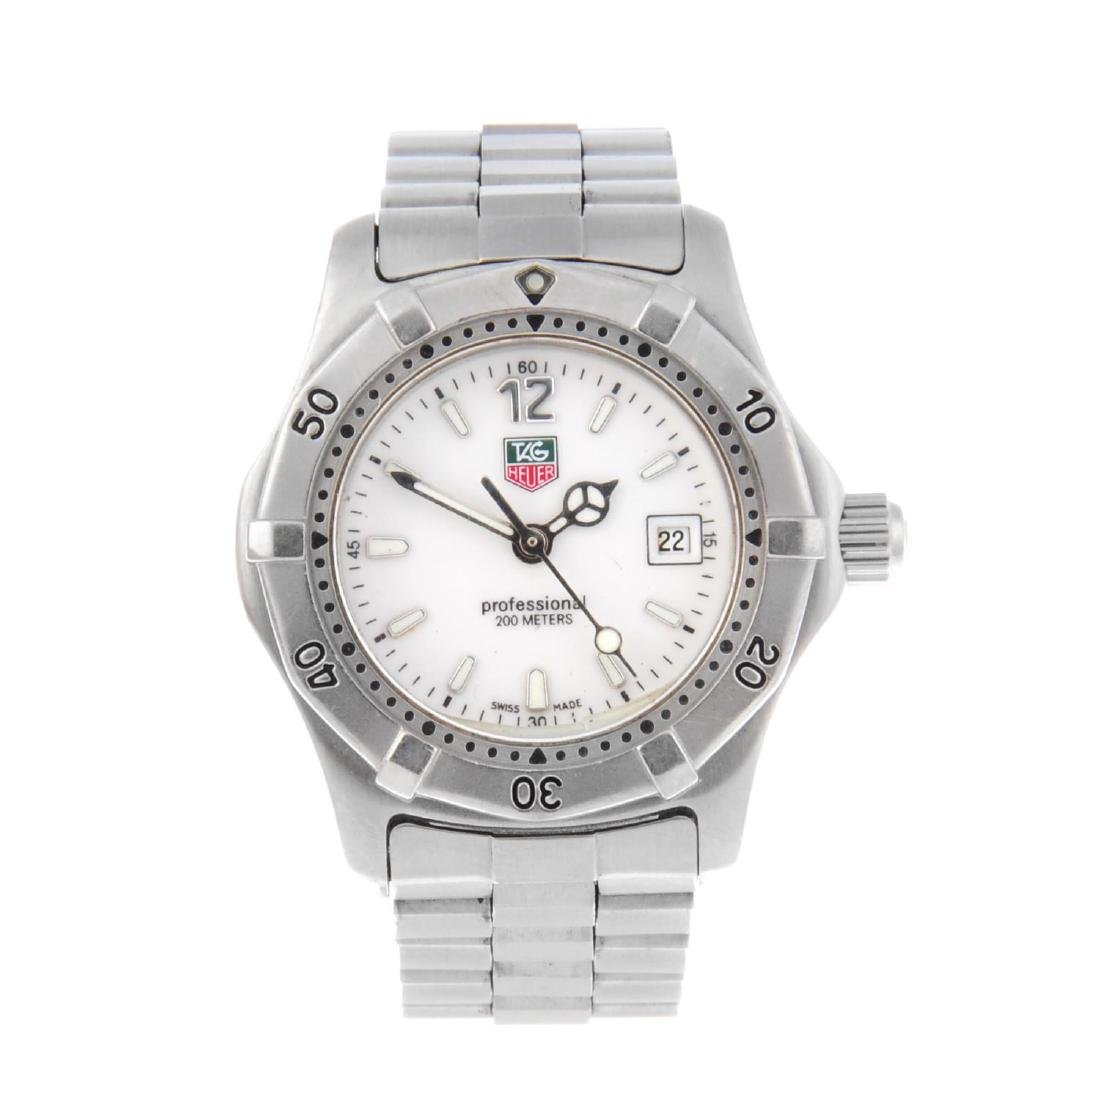 TAG HEUER - a lady's 2000 Series bracelet watch.